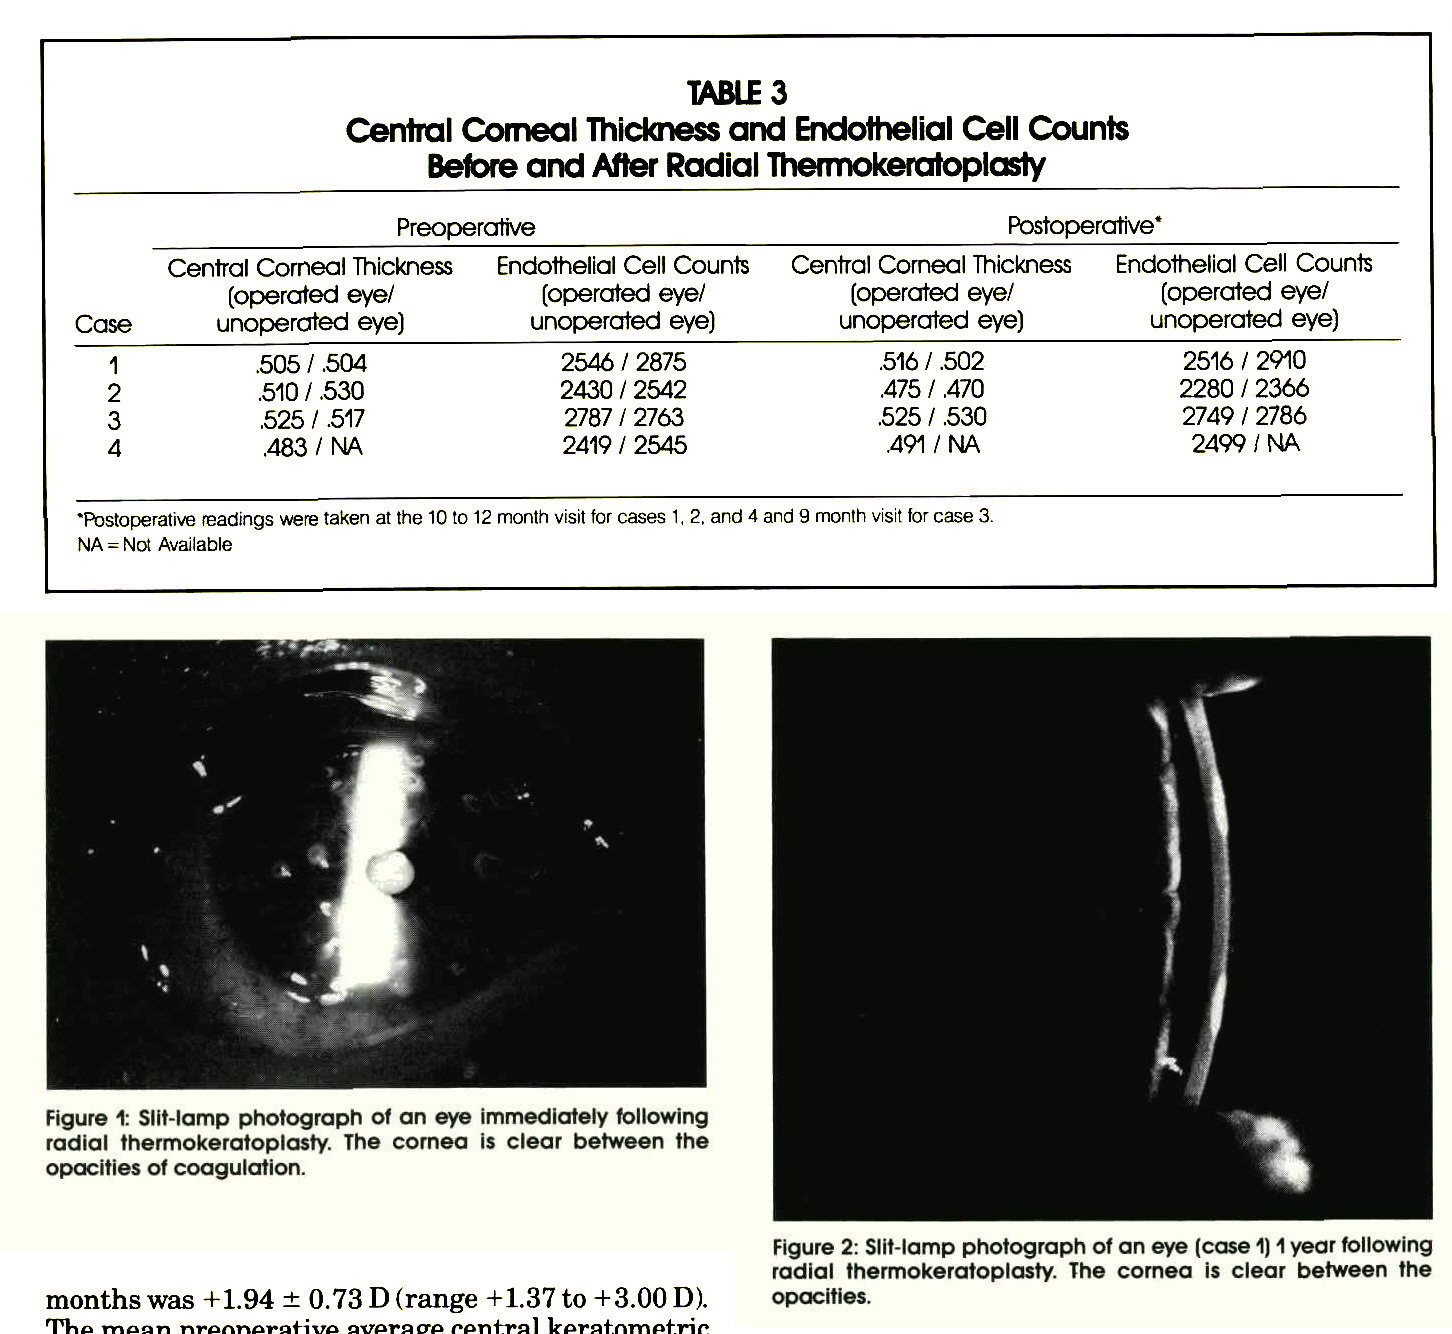 TABLE 3Central Corneal Thickness and Endothelial Cell Counts Before and After Radial ThermokeratoplastyFigure 1: Slit-lamp photograph of an eye immediately following radial thermokeratoplasty. The cornea is clear between the opacities of coagulation.Figure 2: Slit-lamp photograph of an eye (case 1) 1 year following radial thermokeratoplasty. The cornea is clear between the opacities.